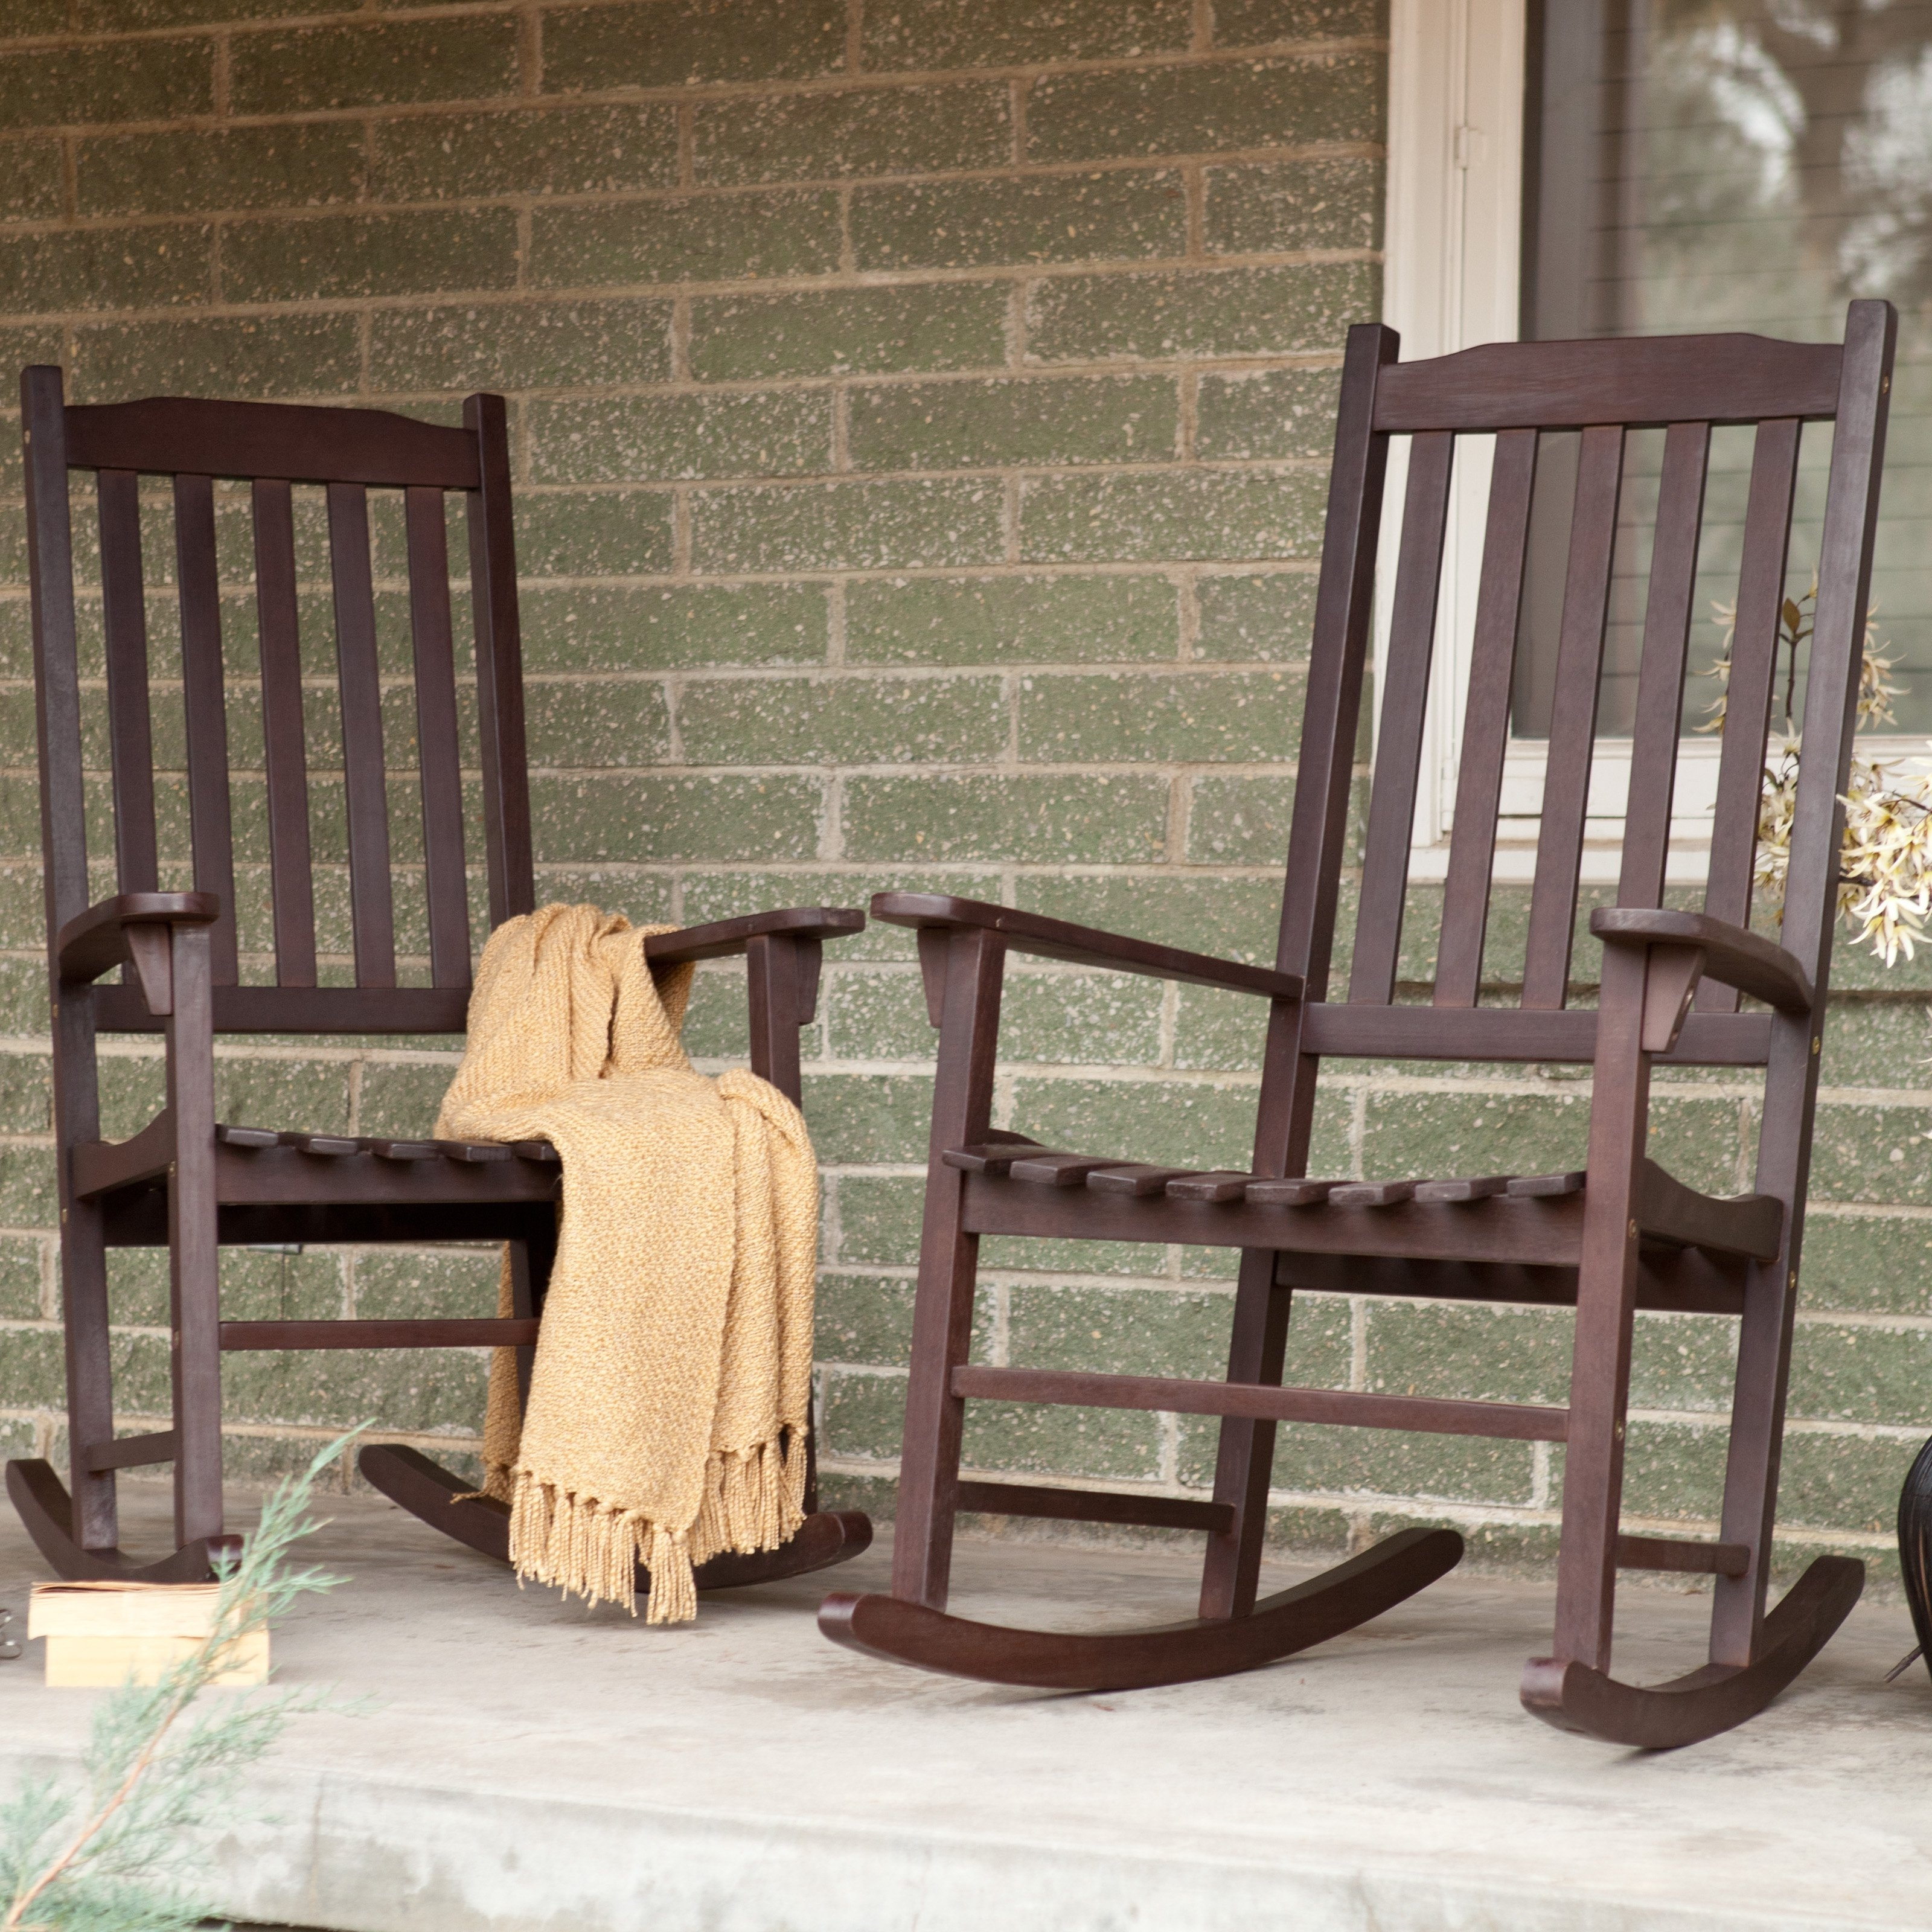 Chair Black Indoor Rocking Chair Black Patio Rocking Chairs Black Inside Black Patio Rocking Chairs (#3 of 15)